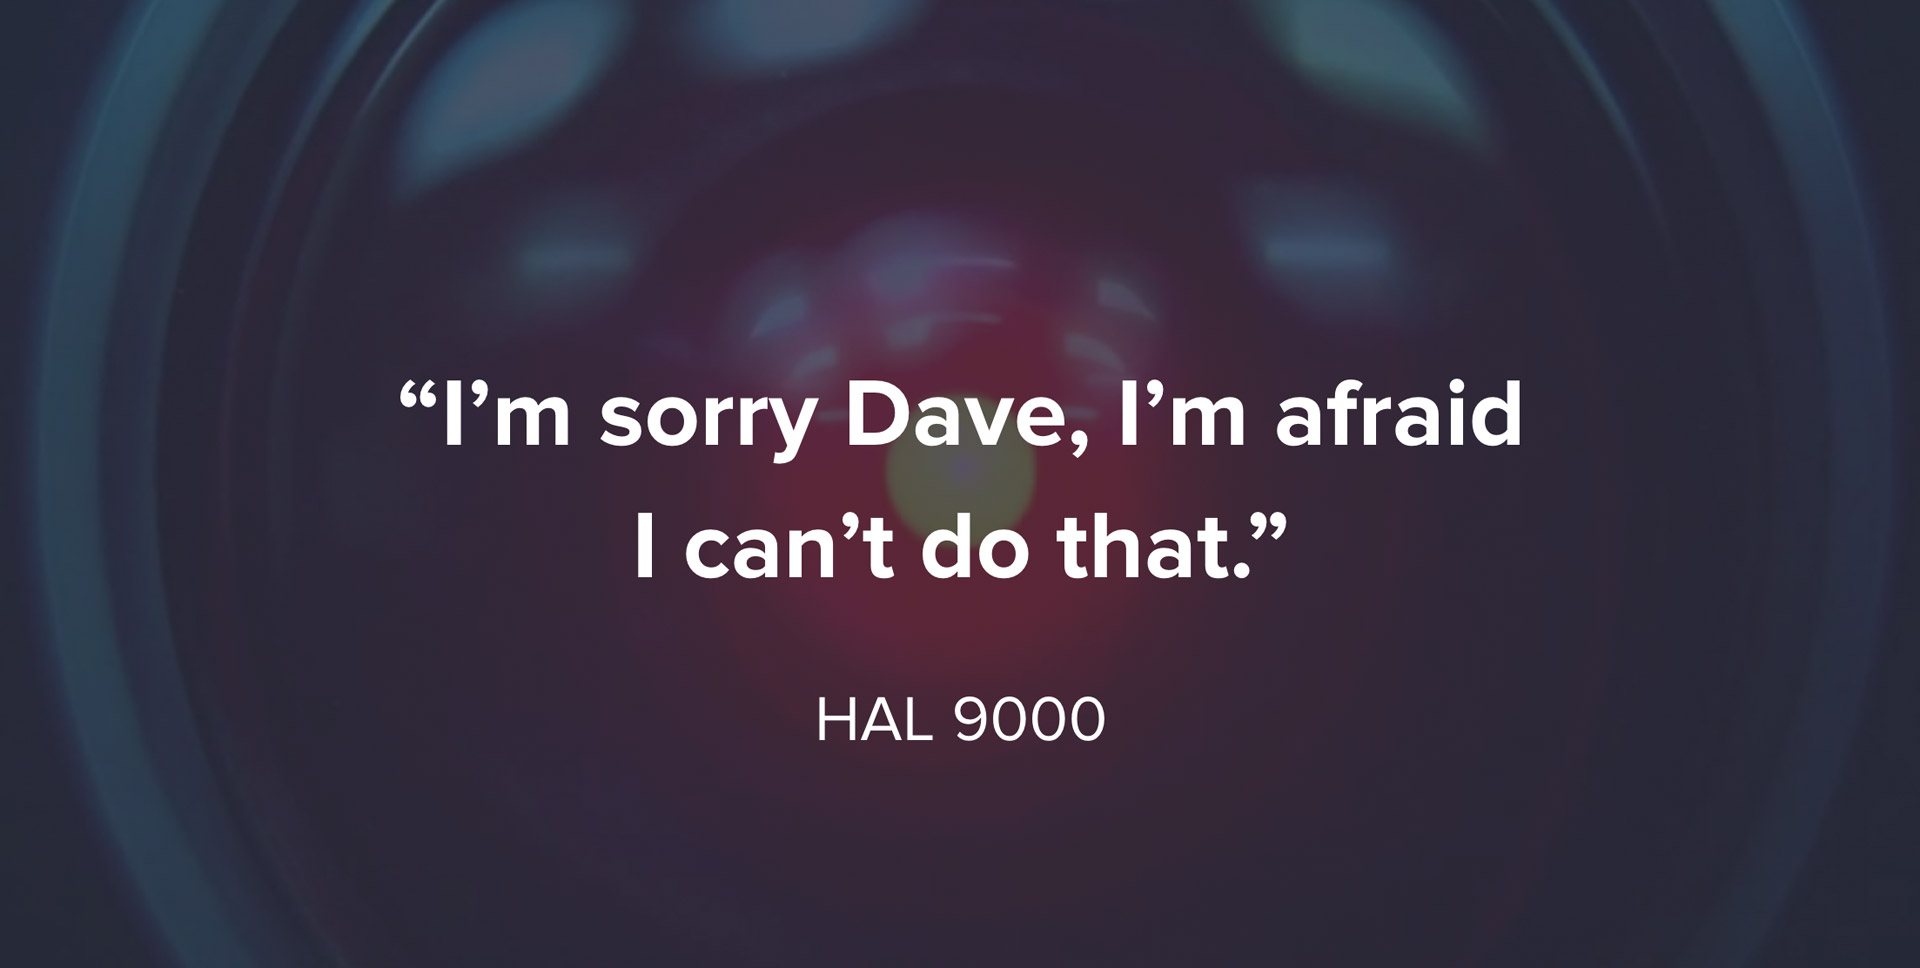 Image of HAL 9000 from the movie 2001: A Space Odyssey